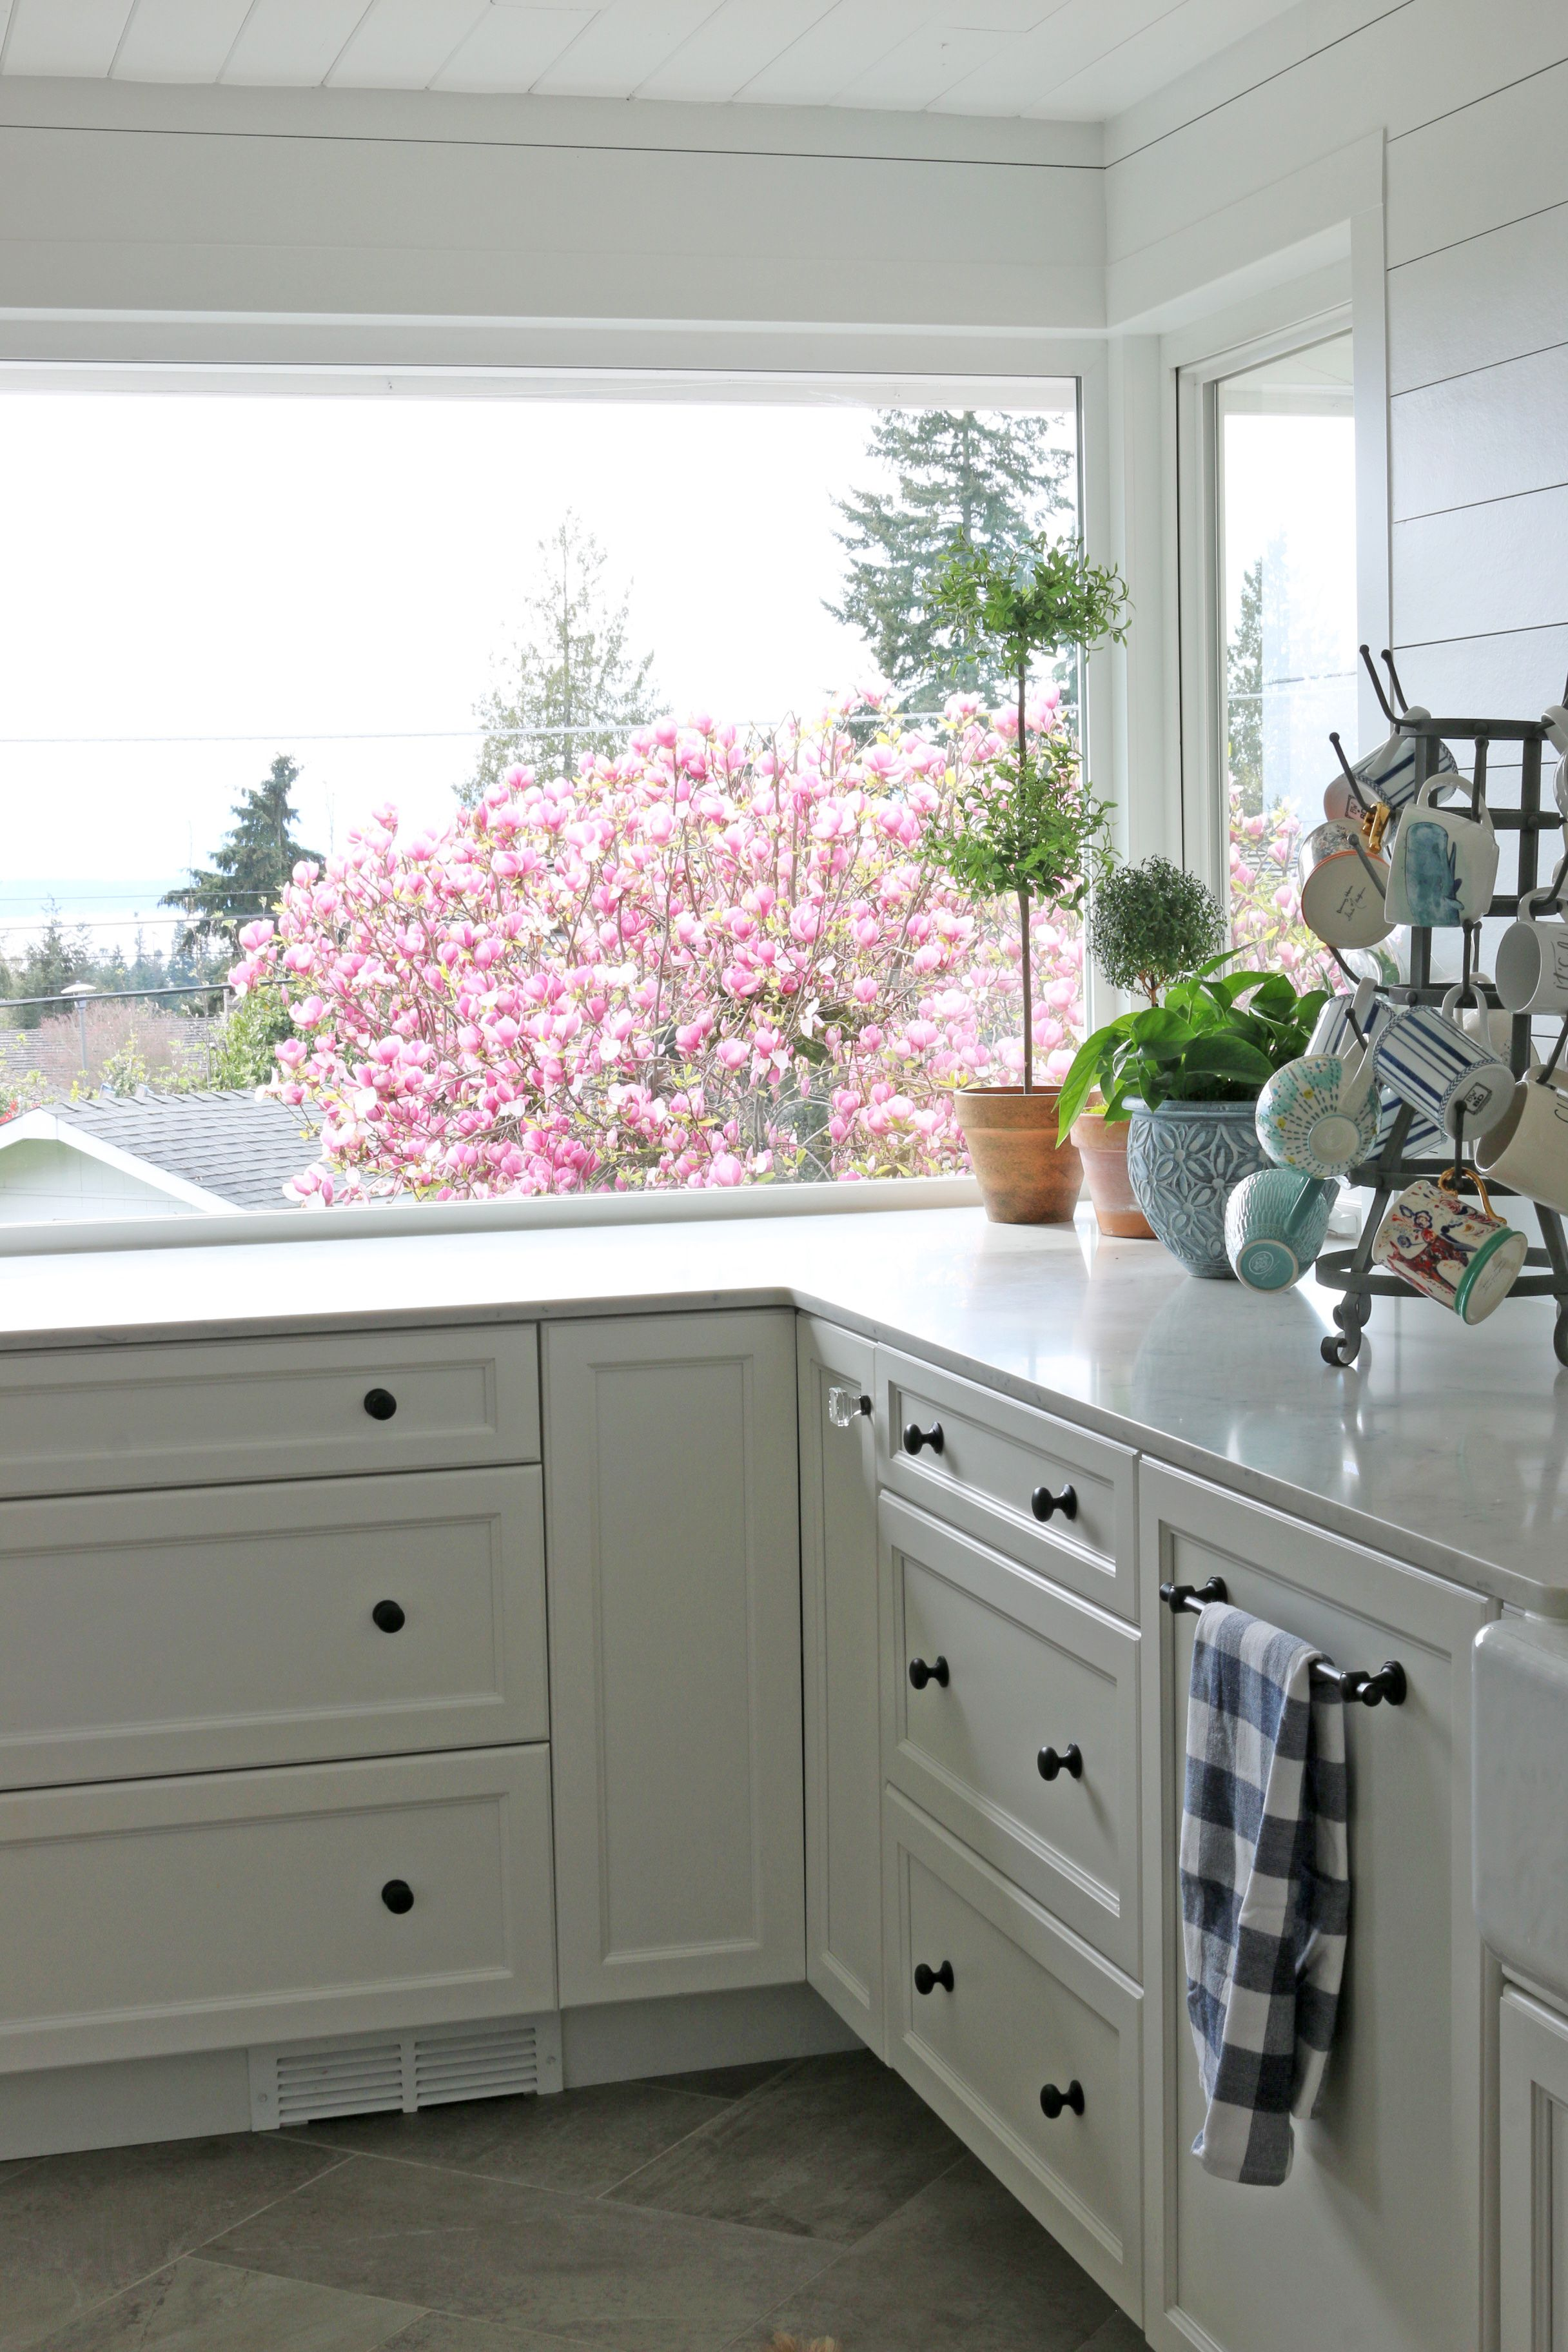 kitchen marble images subway accent carrara for countertops granite look countertop like white also with tile tiles cost backsplash carrera that